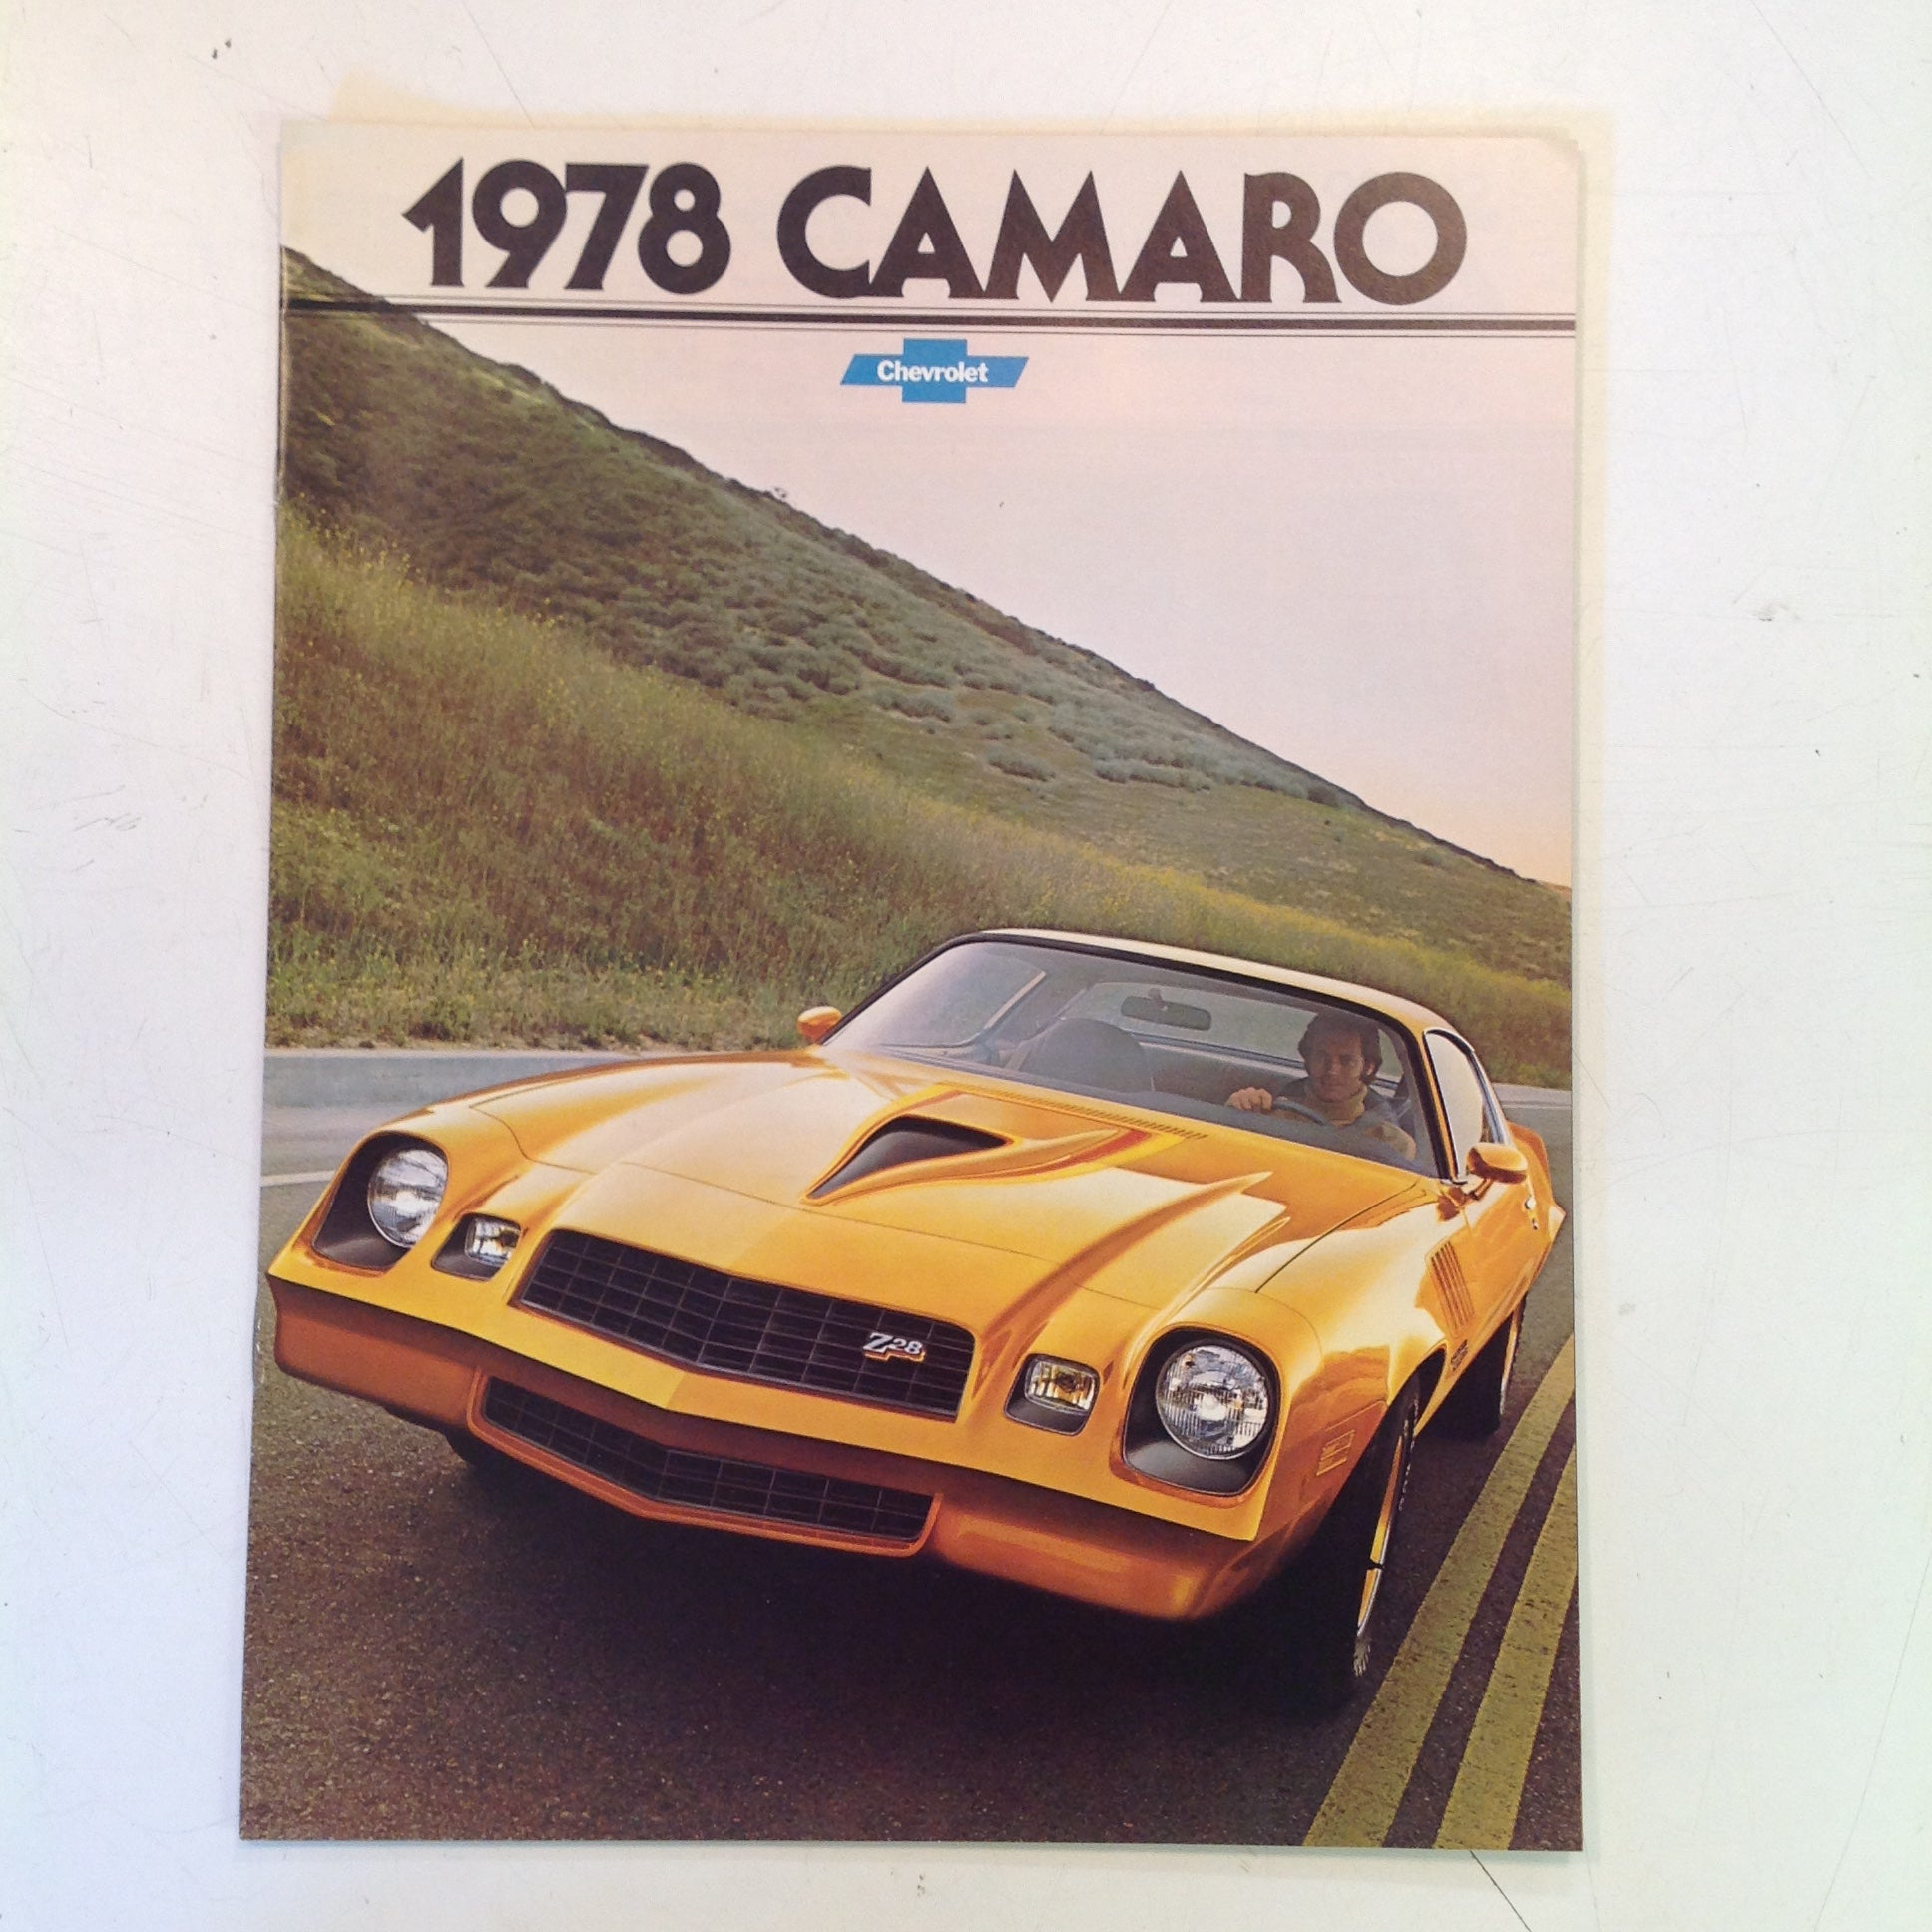 Vintage 1977 Chevrolet 1978 Camaro Informational Sales Brochure Rally LT Coupe Z